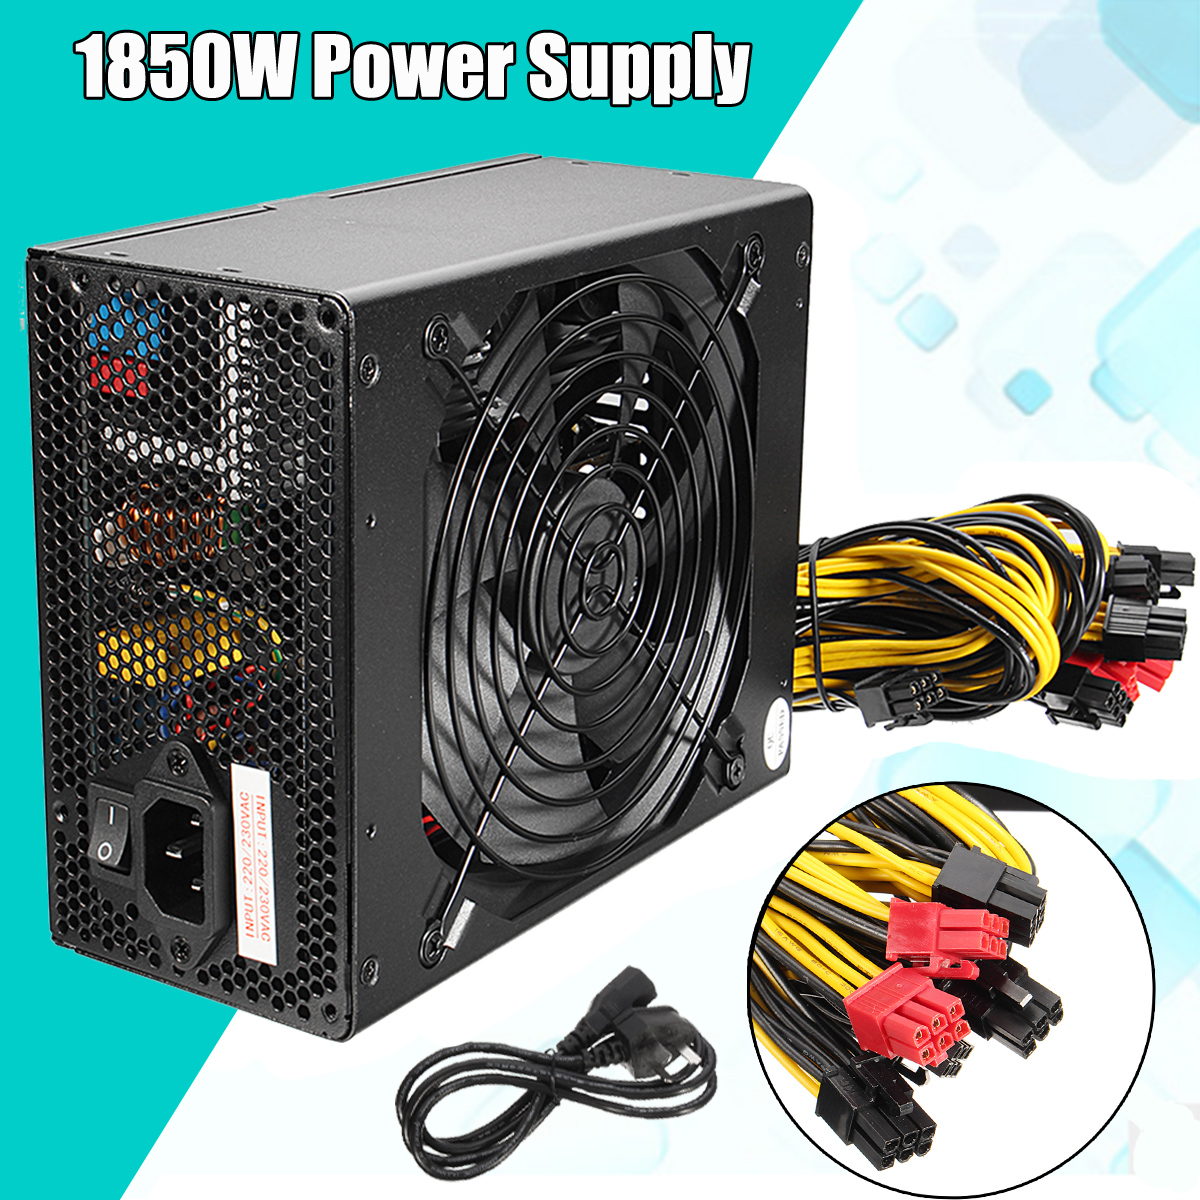 1850 W MAX Miner alimentation 6 broches pour Antminer S9/S7/A7/A6/L3/R4 Bitcoin Coin Miner ordinateur alimentation pour BTC